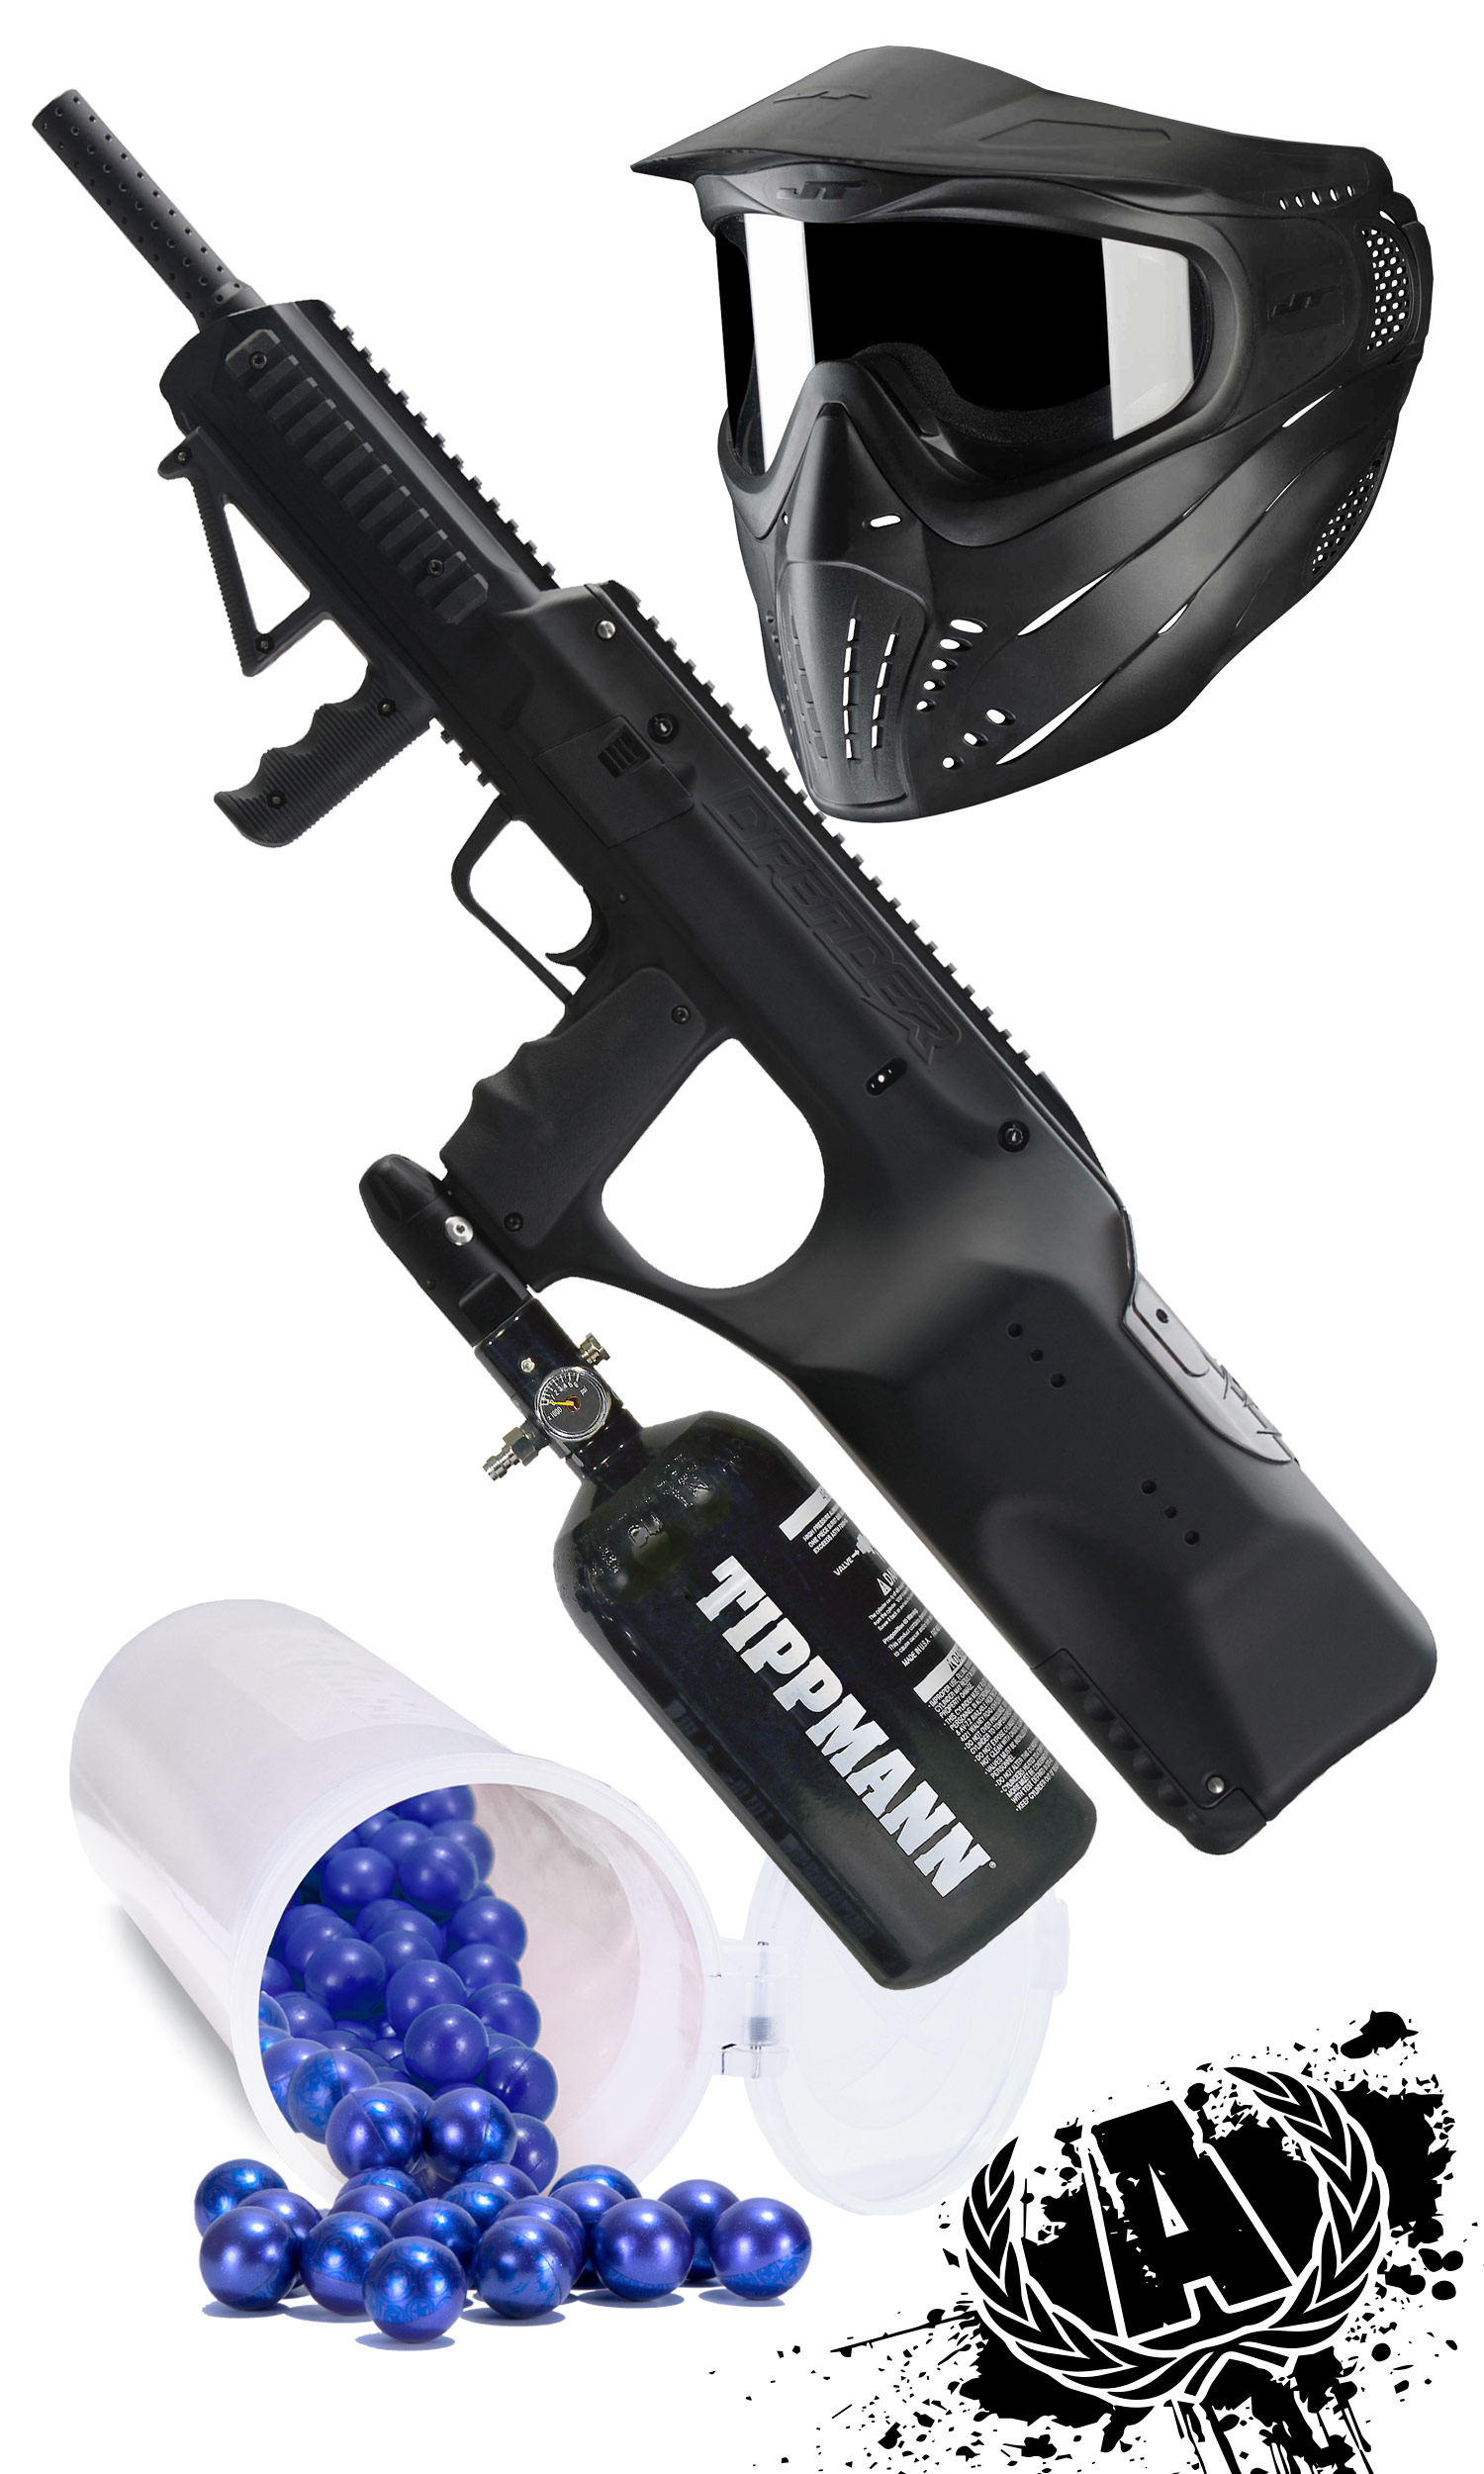 The innovative genius of Empire Paintball has been at it again with the creation of the Empire BT D*Fender. This radical design moves the loader from off the top of the marker and places it within the stock of this bullpup-style masterpiece. The D*Fender has ultra-strong, lightweight magnesium shells with the high performance guts of our proven markers and a Z2 loader inside. Reduce your silhouette and never take a hit on your loader again. Forget its name, with the D*Fender in your hands, you'll attack!